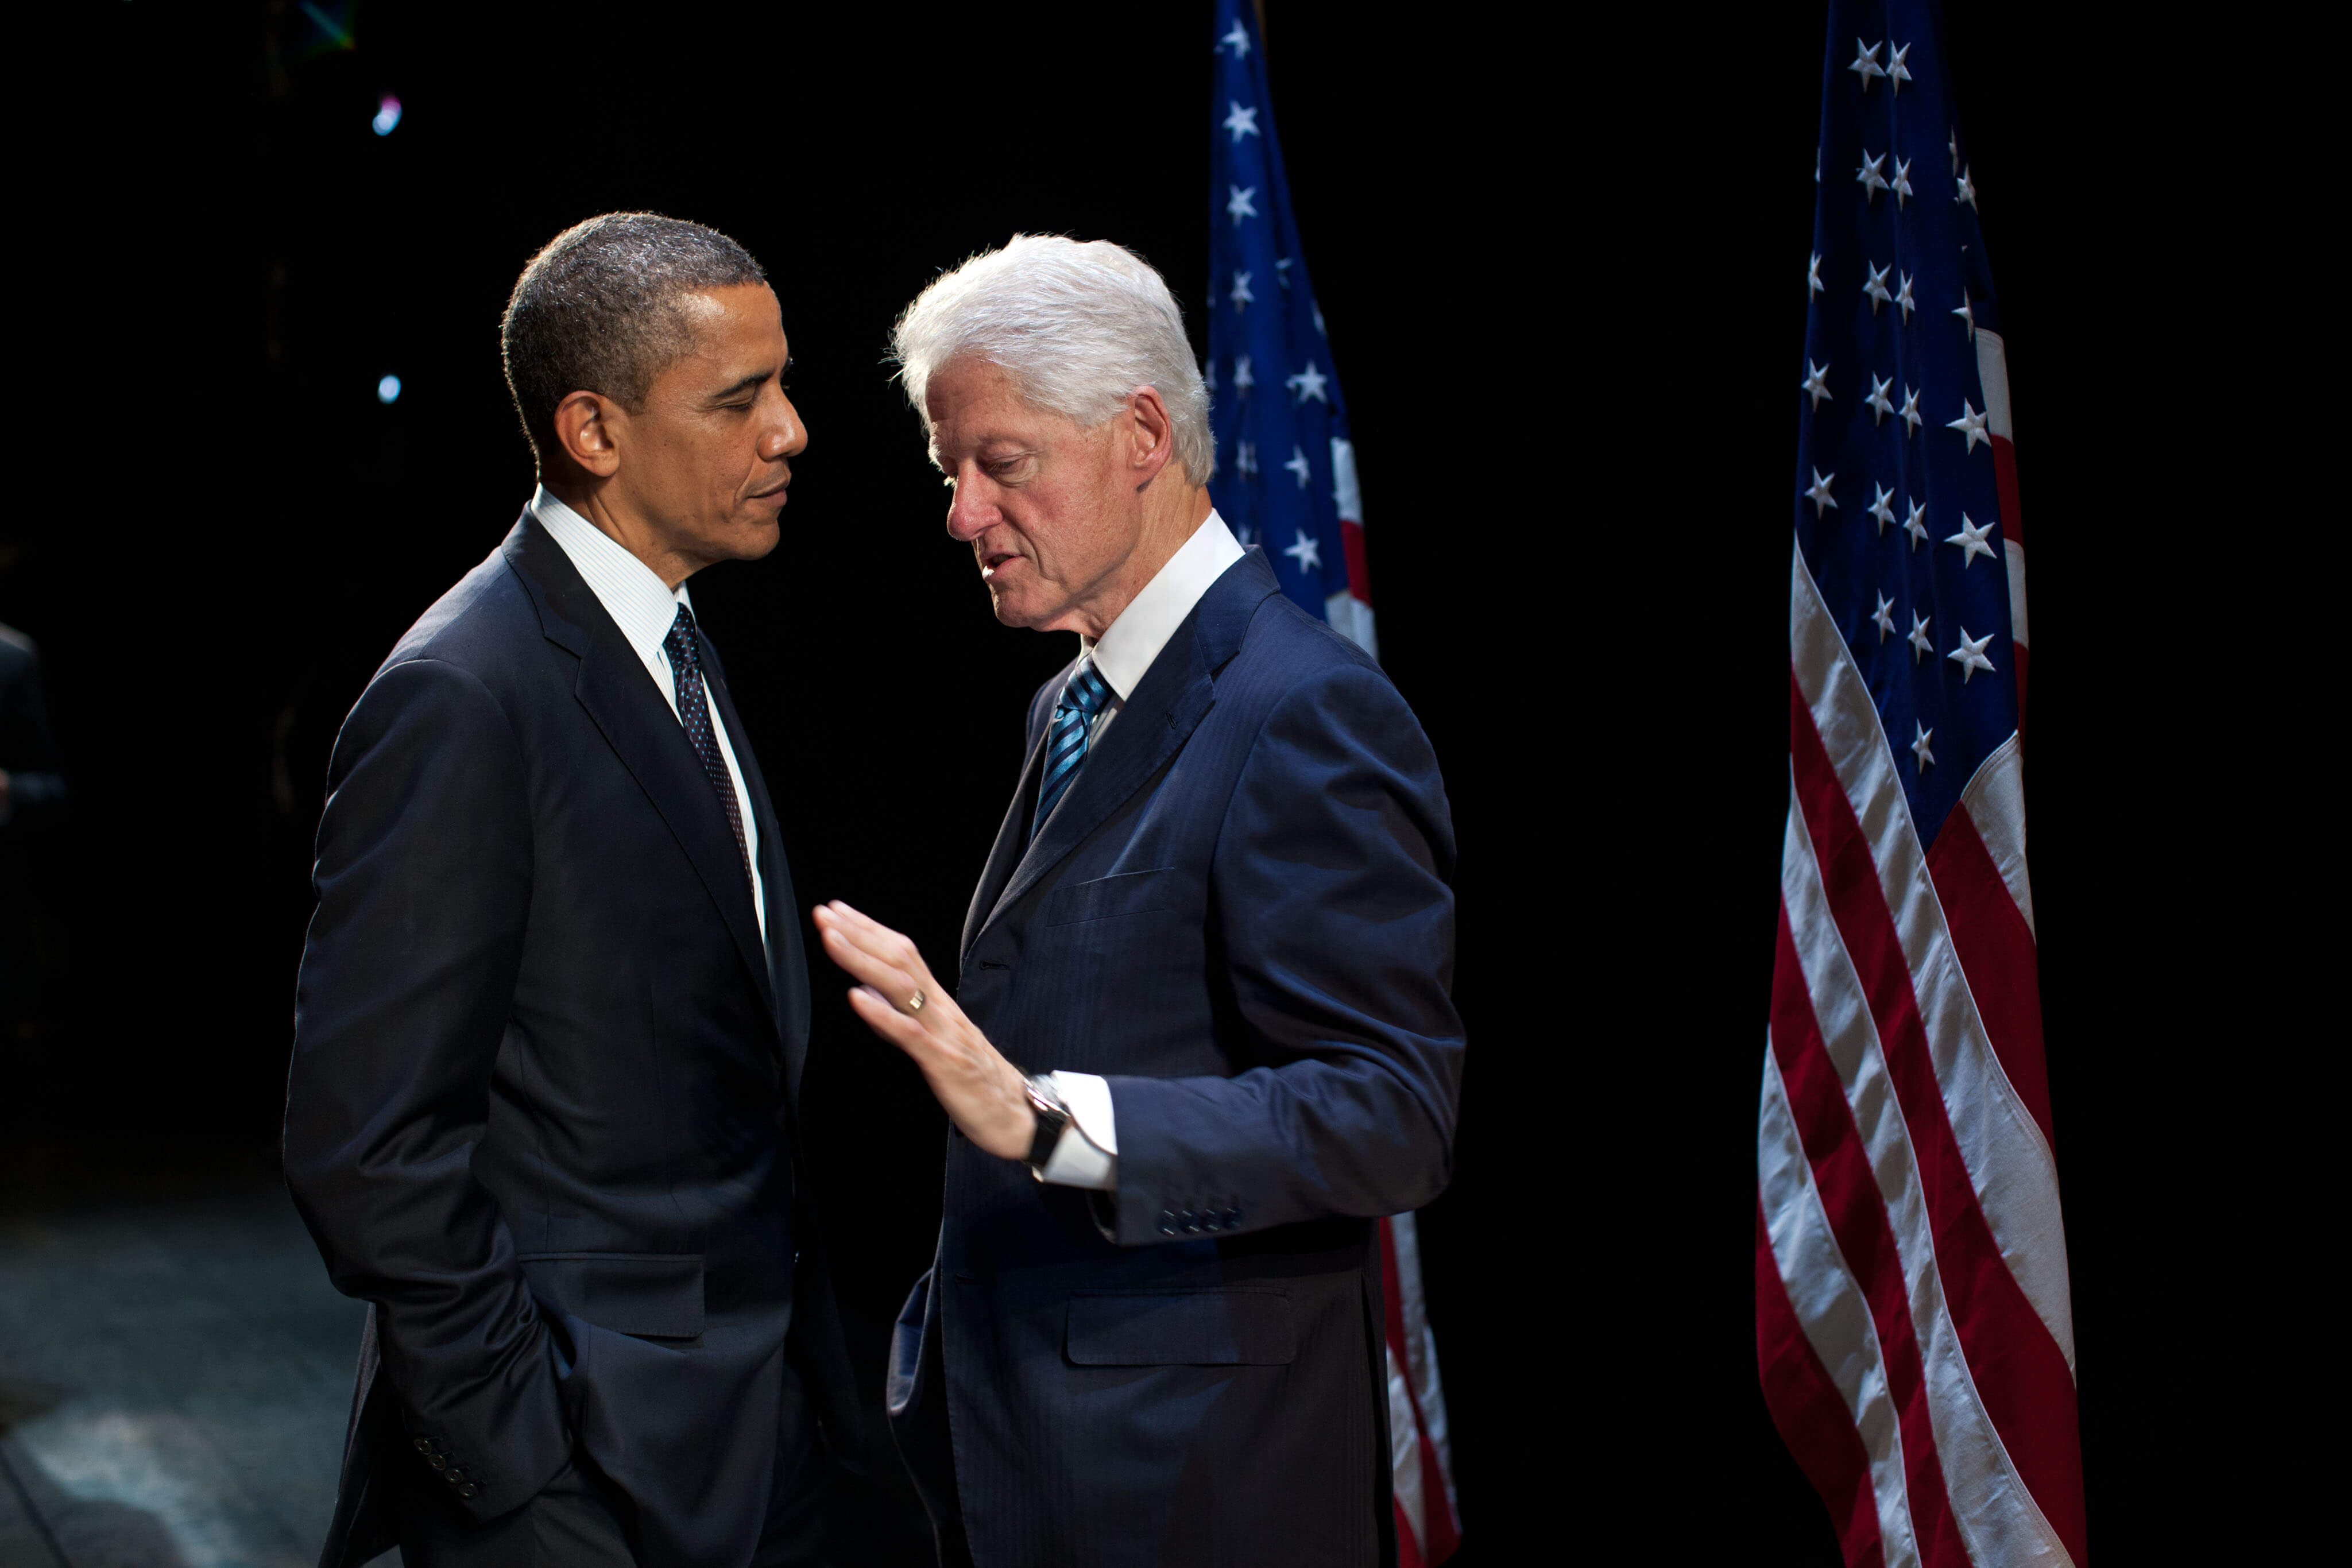 President Barack Obama praat backstage met voormalig president Bill Clinton in het New Amsterdam Theater in New York, 2012. © Obama White House/Flickr